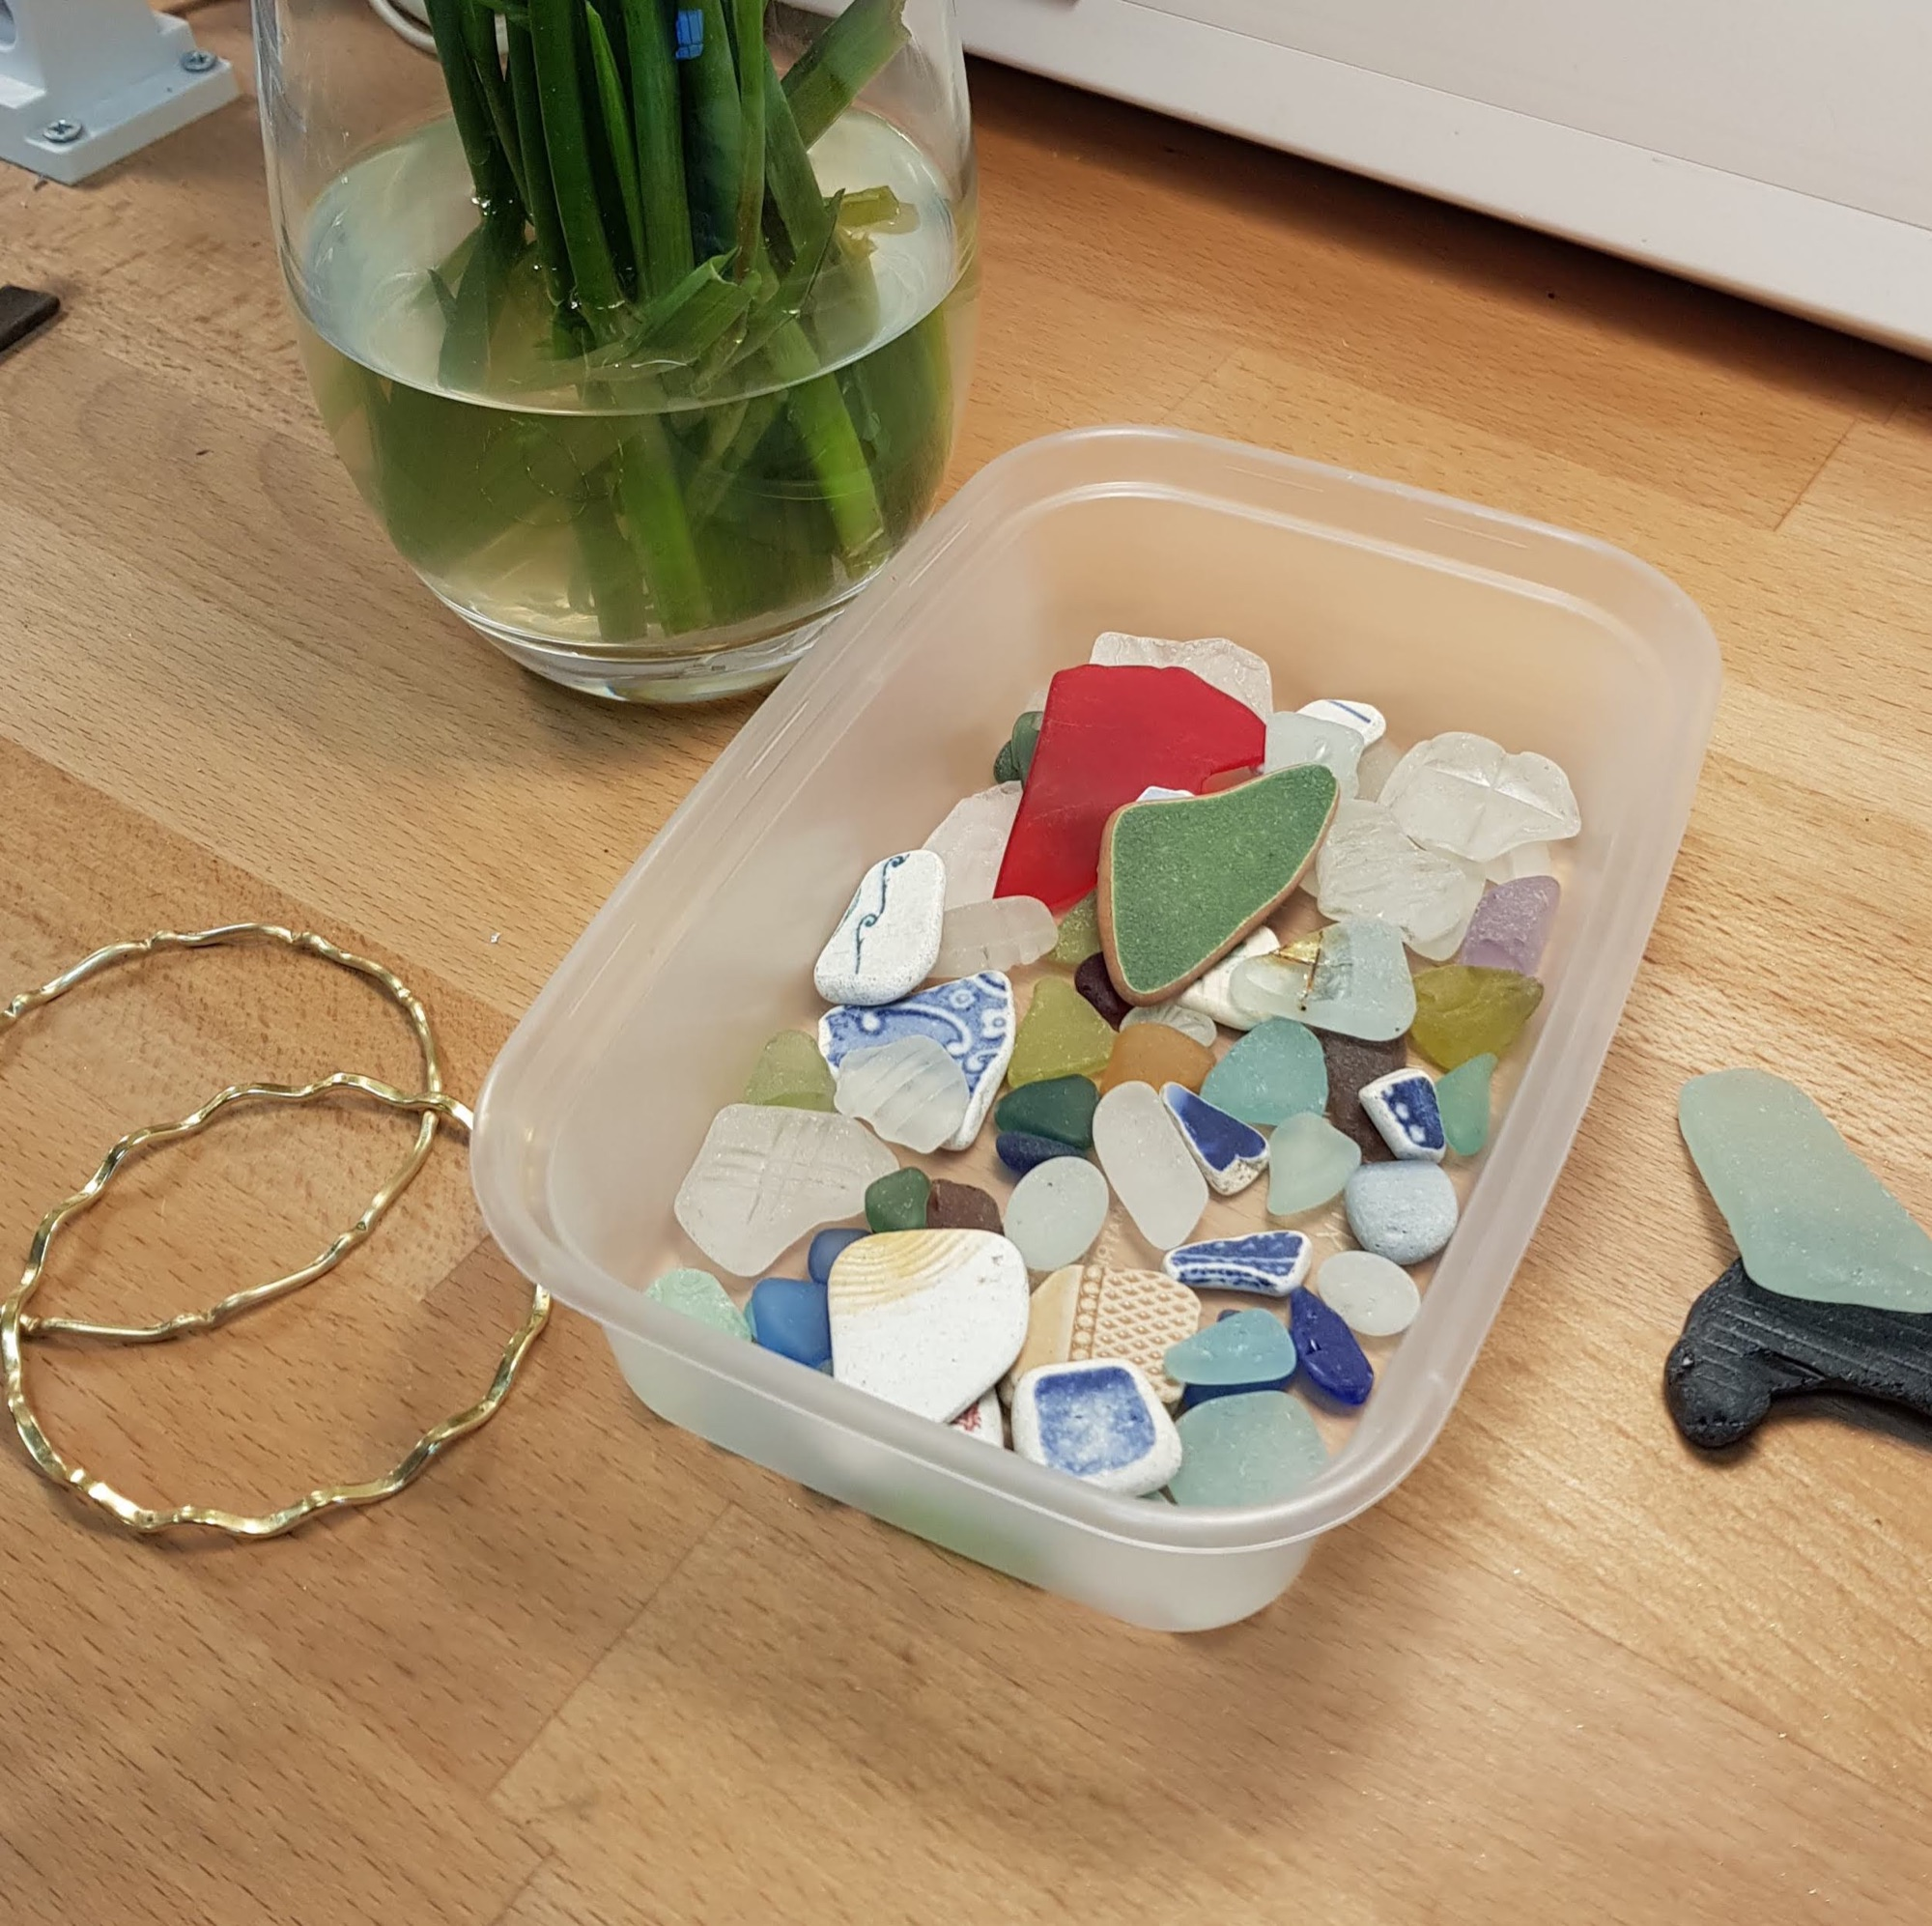 Bangle making workshop with seaglass setting workshop